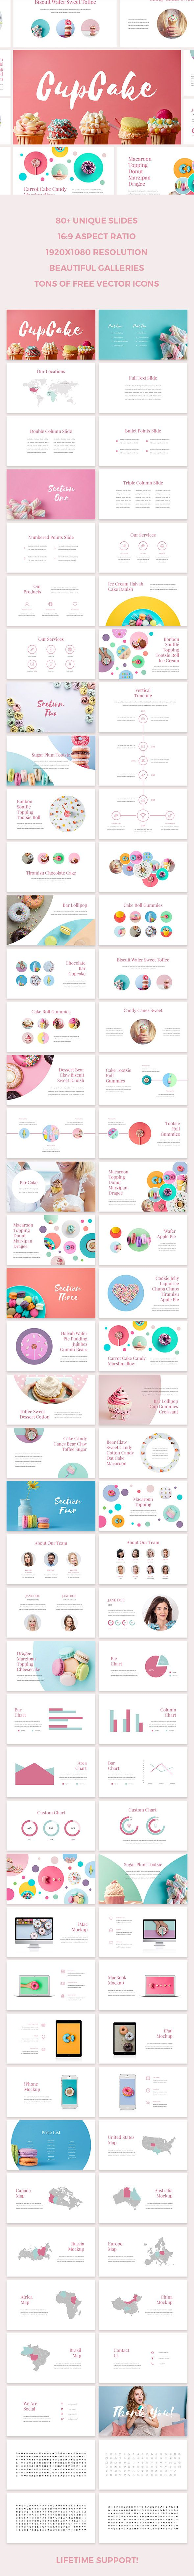 CupCake Keynote Template  #marketing #cute • Download ➝ https://graphicriver.net/item/cupcake-keynote-template/18038367?ref=pxcr